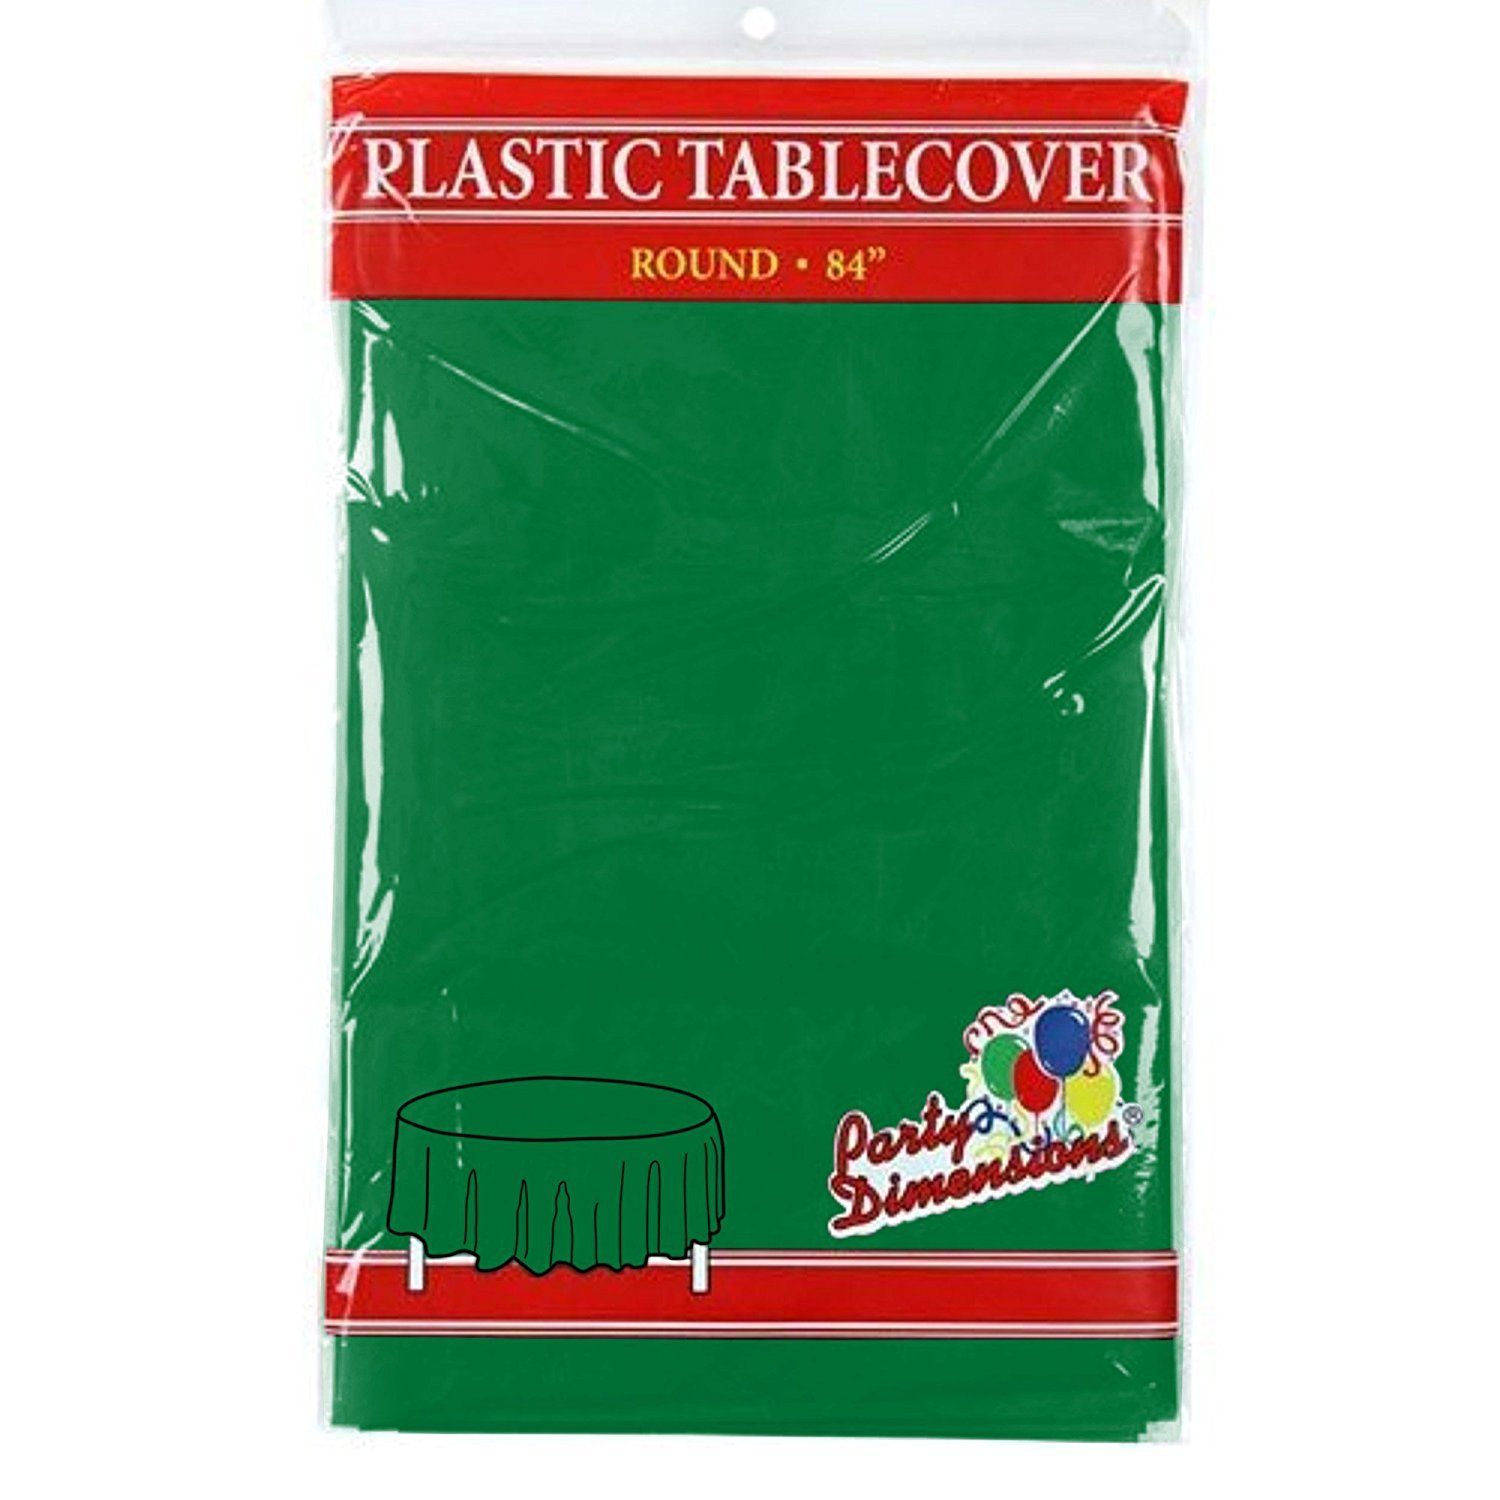 """Green Round Plastic Tablecloth - 4 Pack - Premium Quality Disposable Party Table Covers for Parties and Events - 84"""" - By Party Dimensions"""